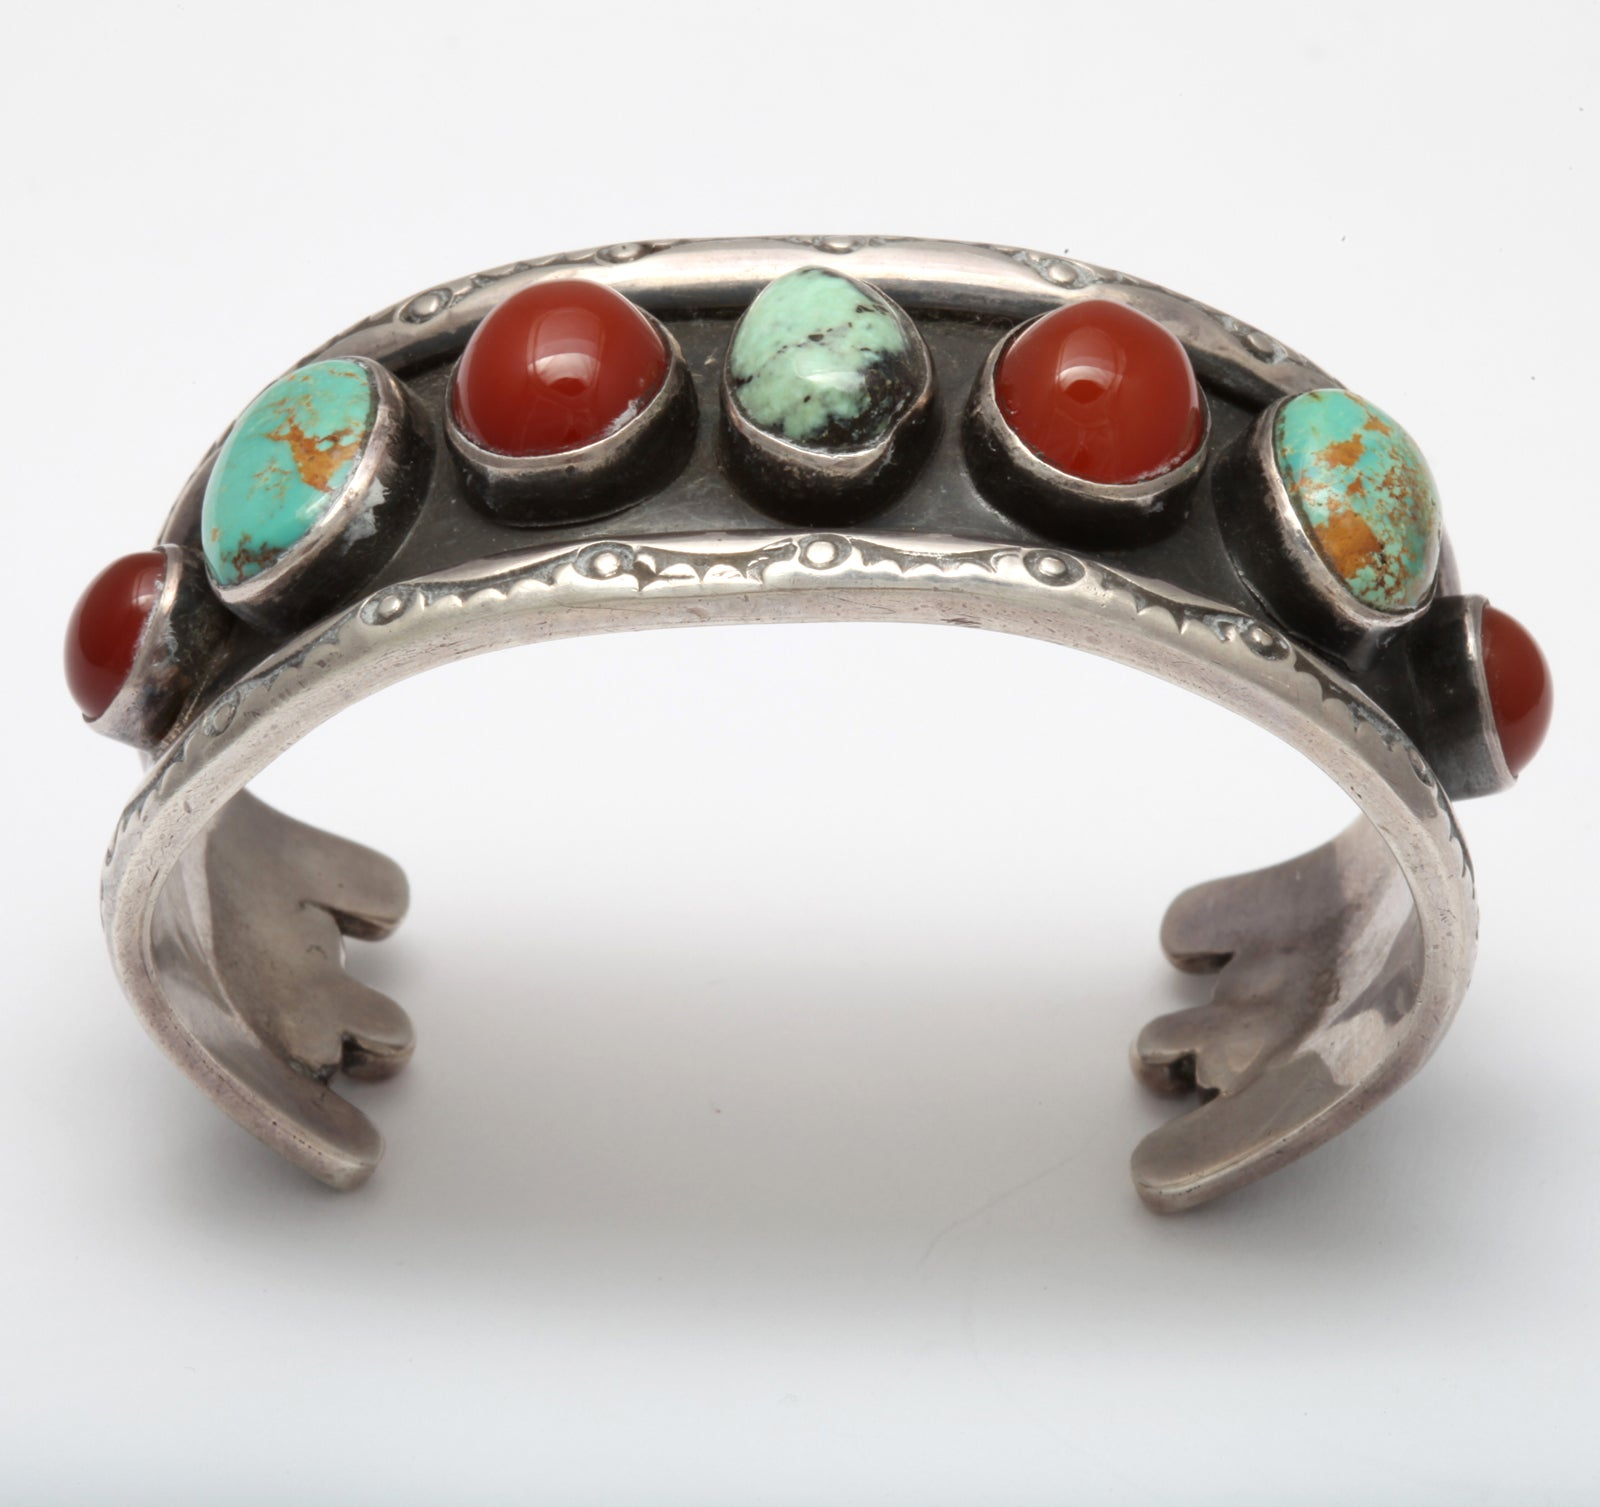 Old Navajo Cuff of Matrix Turquoise and Carnelian 3